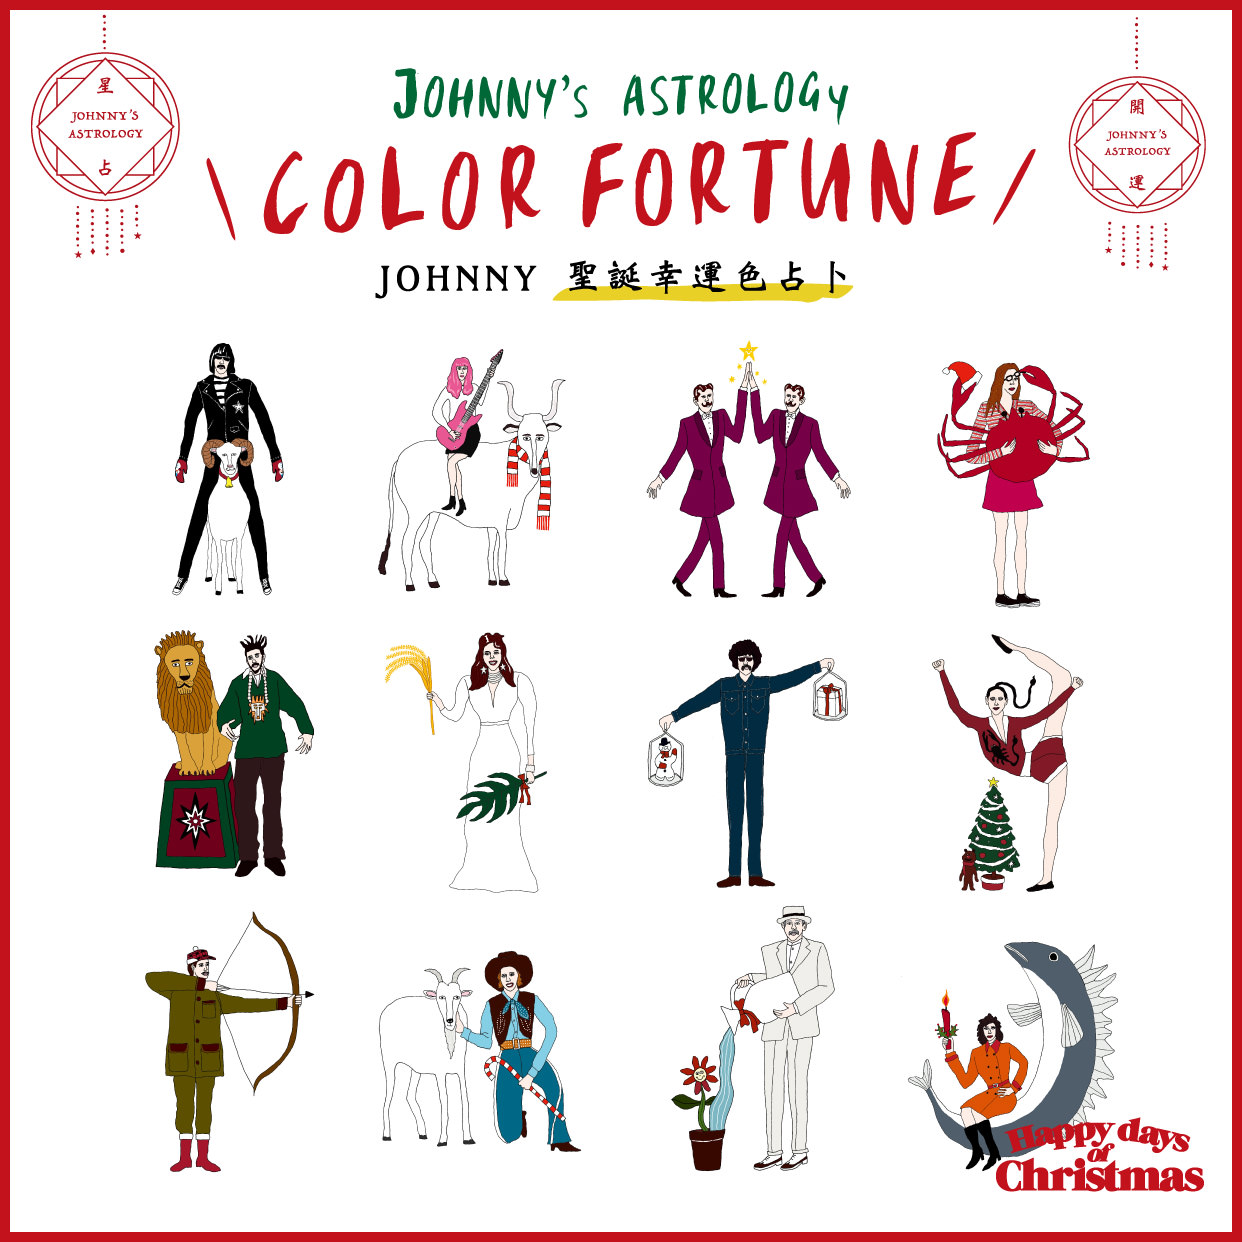 JOHNNY'S ASTROLOGY COLOR FORTUNE